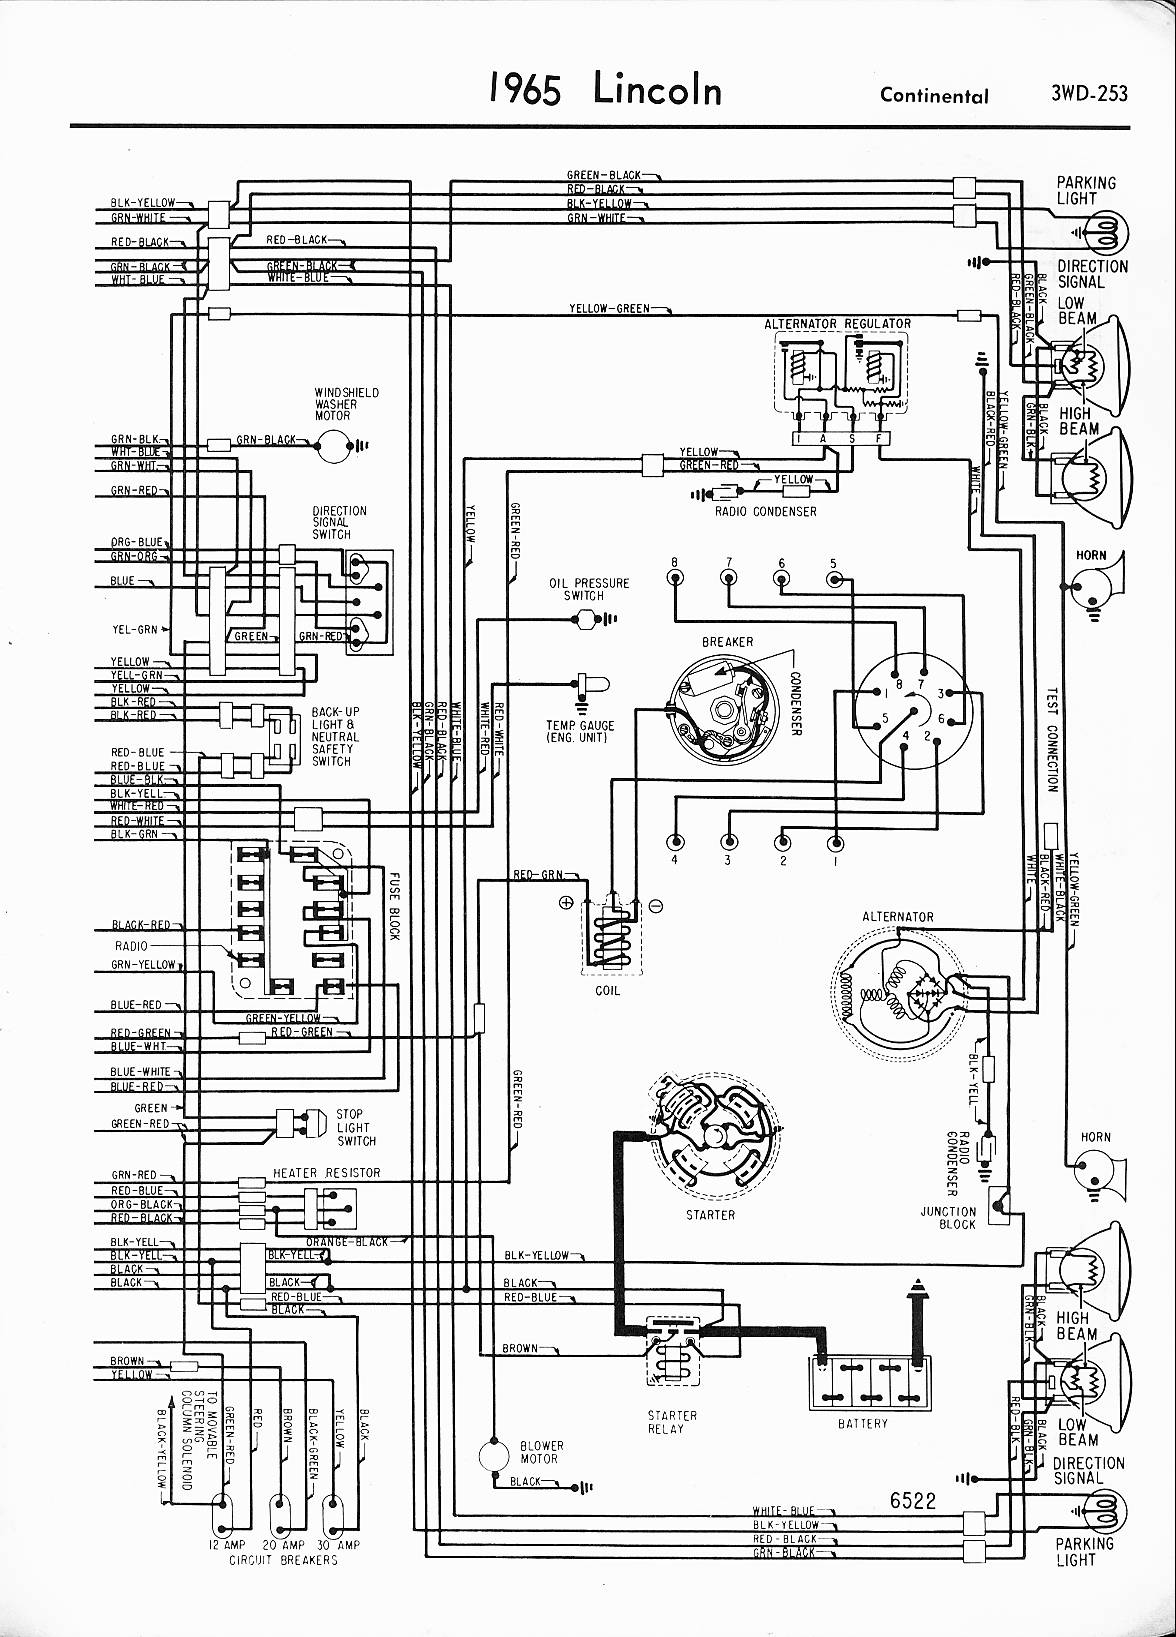 1973 Camaro Horn Wiring Diagram Trusted Diagrams Harness 1971 Lincoln Free Engine Image For 1981 1967